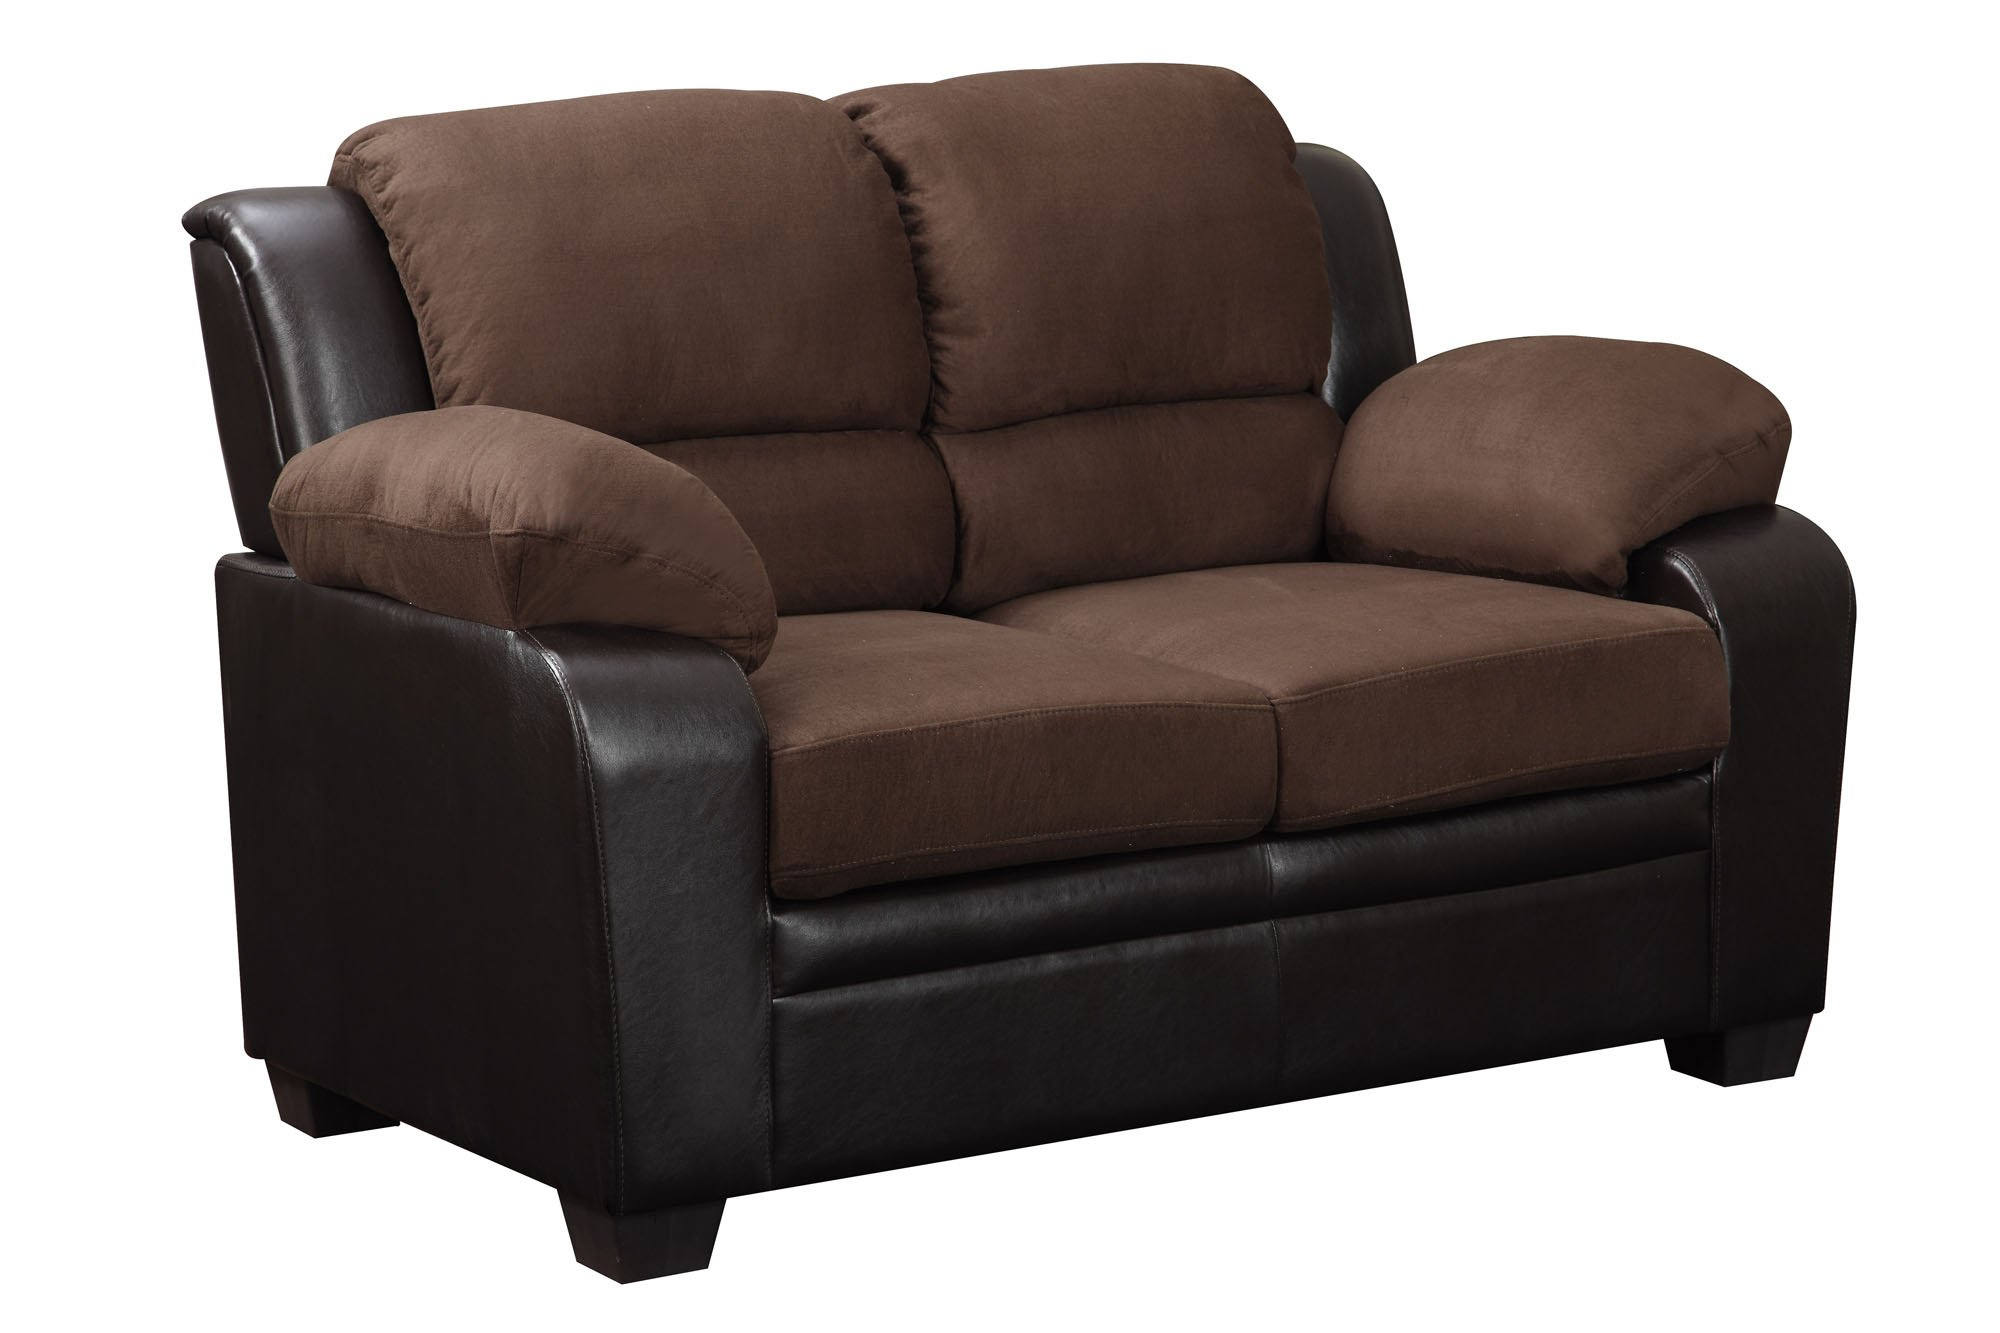 U880018kd chocolate microfiber loveseat by global furniture Brown microfiber couch and loveseat